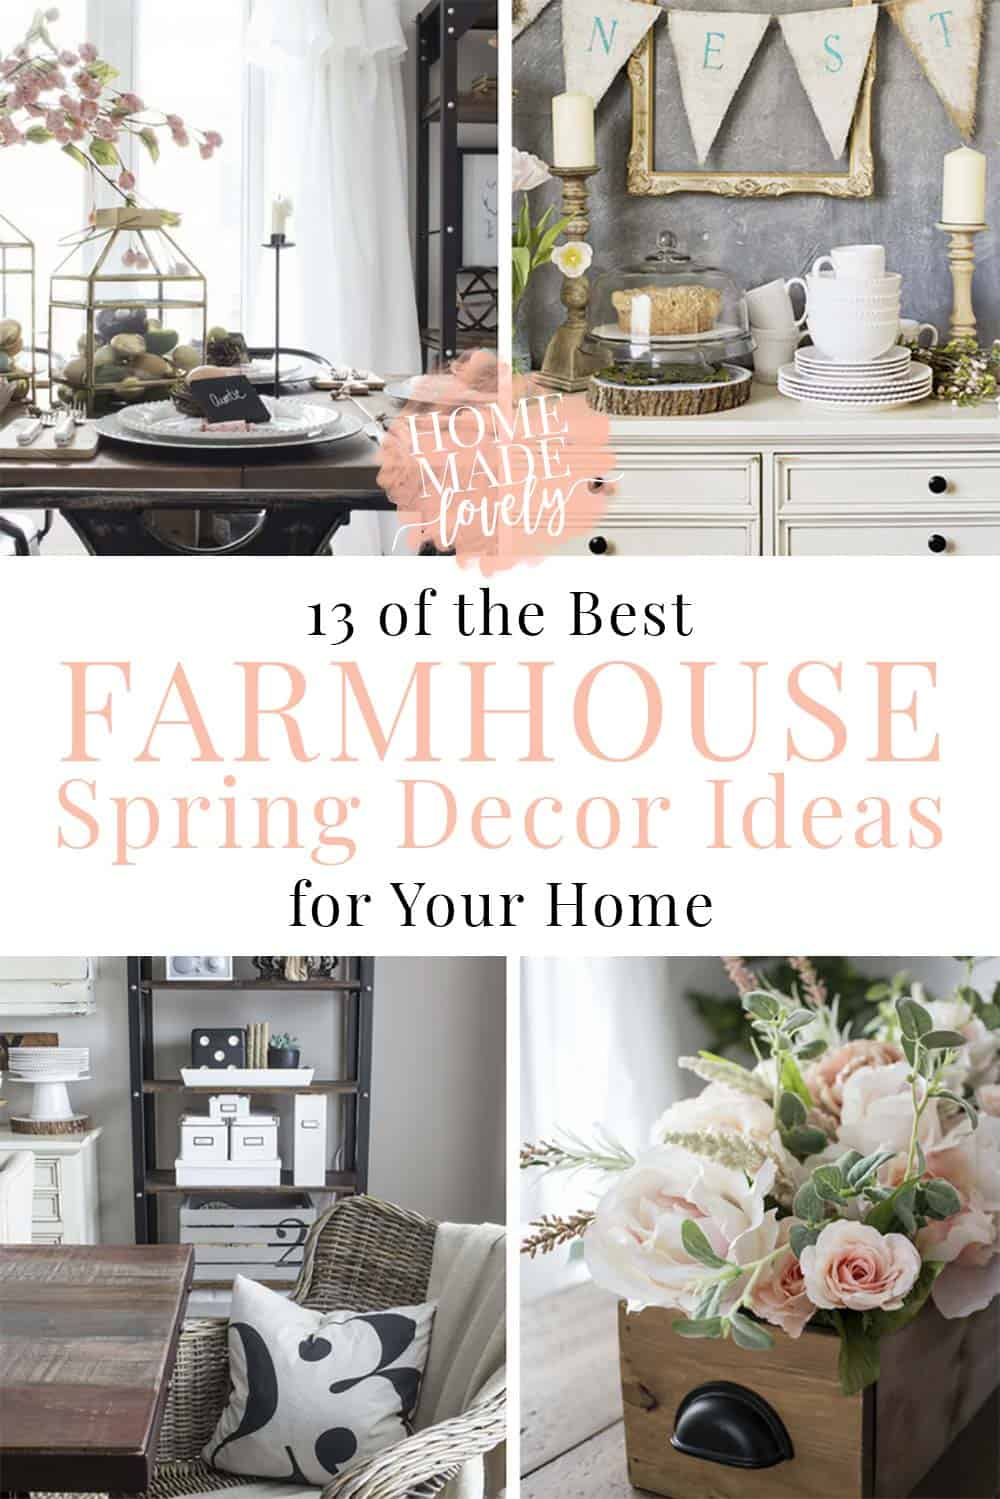 decor awonderfulthought mm com thought farmhouse ideas a wonderful